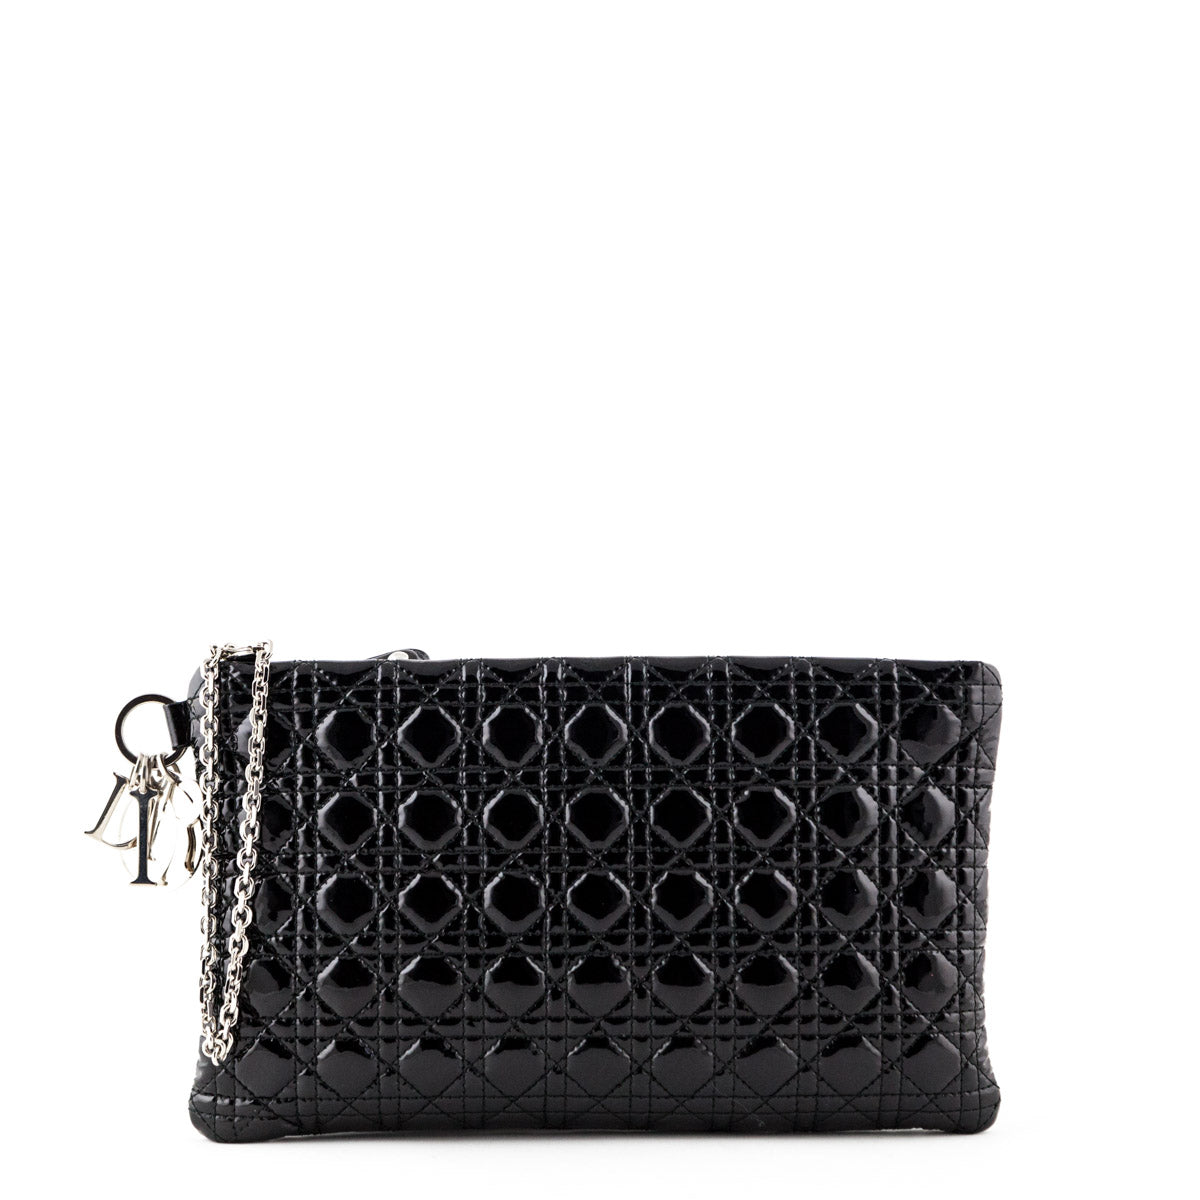 Dior Black Patent Cannage Large Clutch - LOVE that BAG - Preowned Authentic  Designer Handbags ... 31846eb489